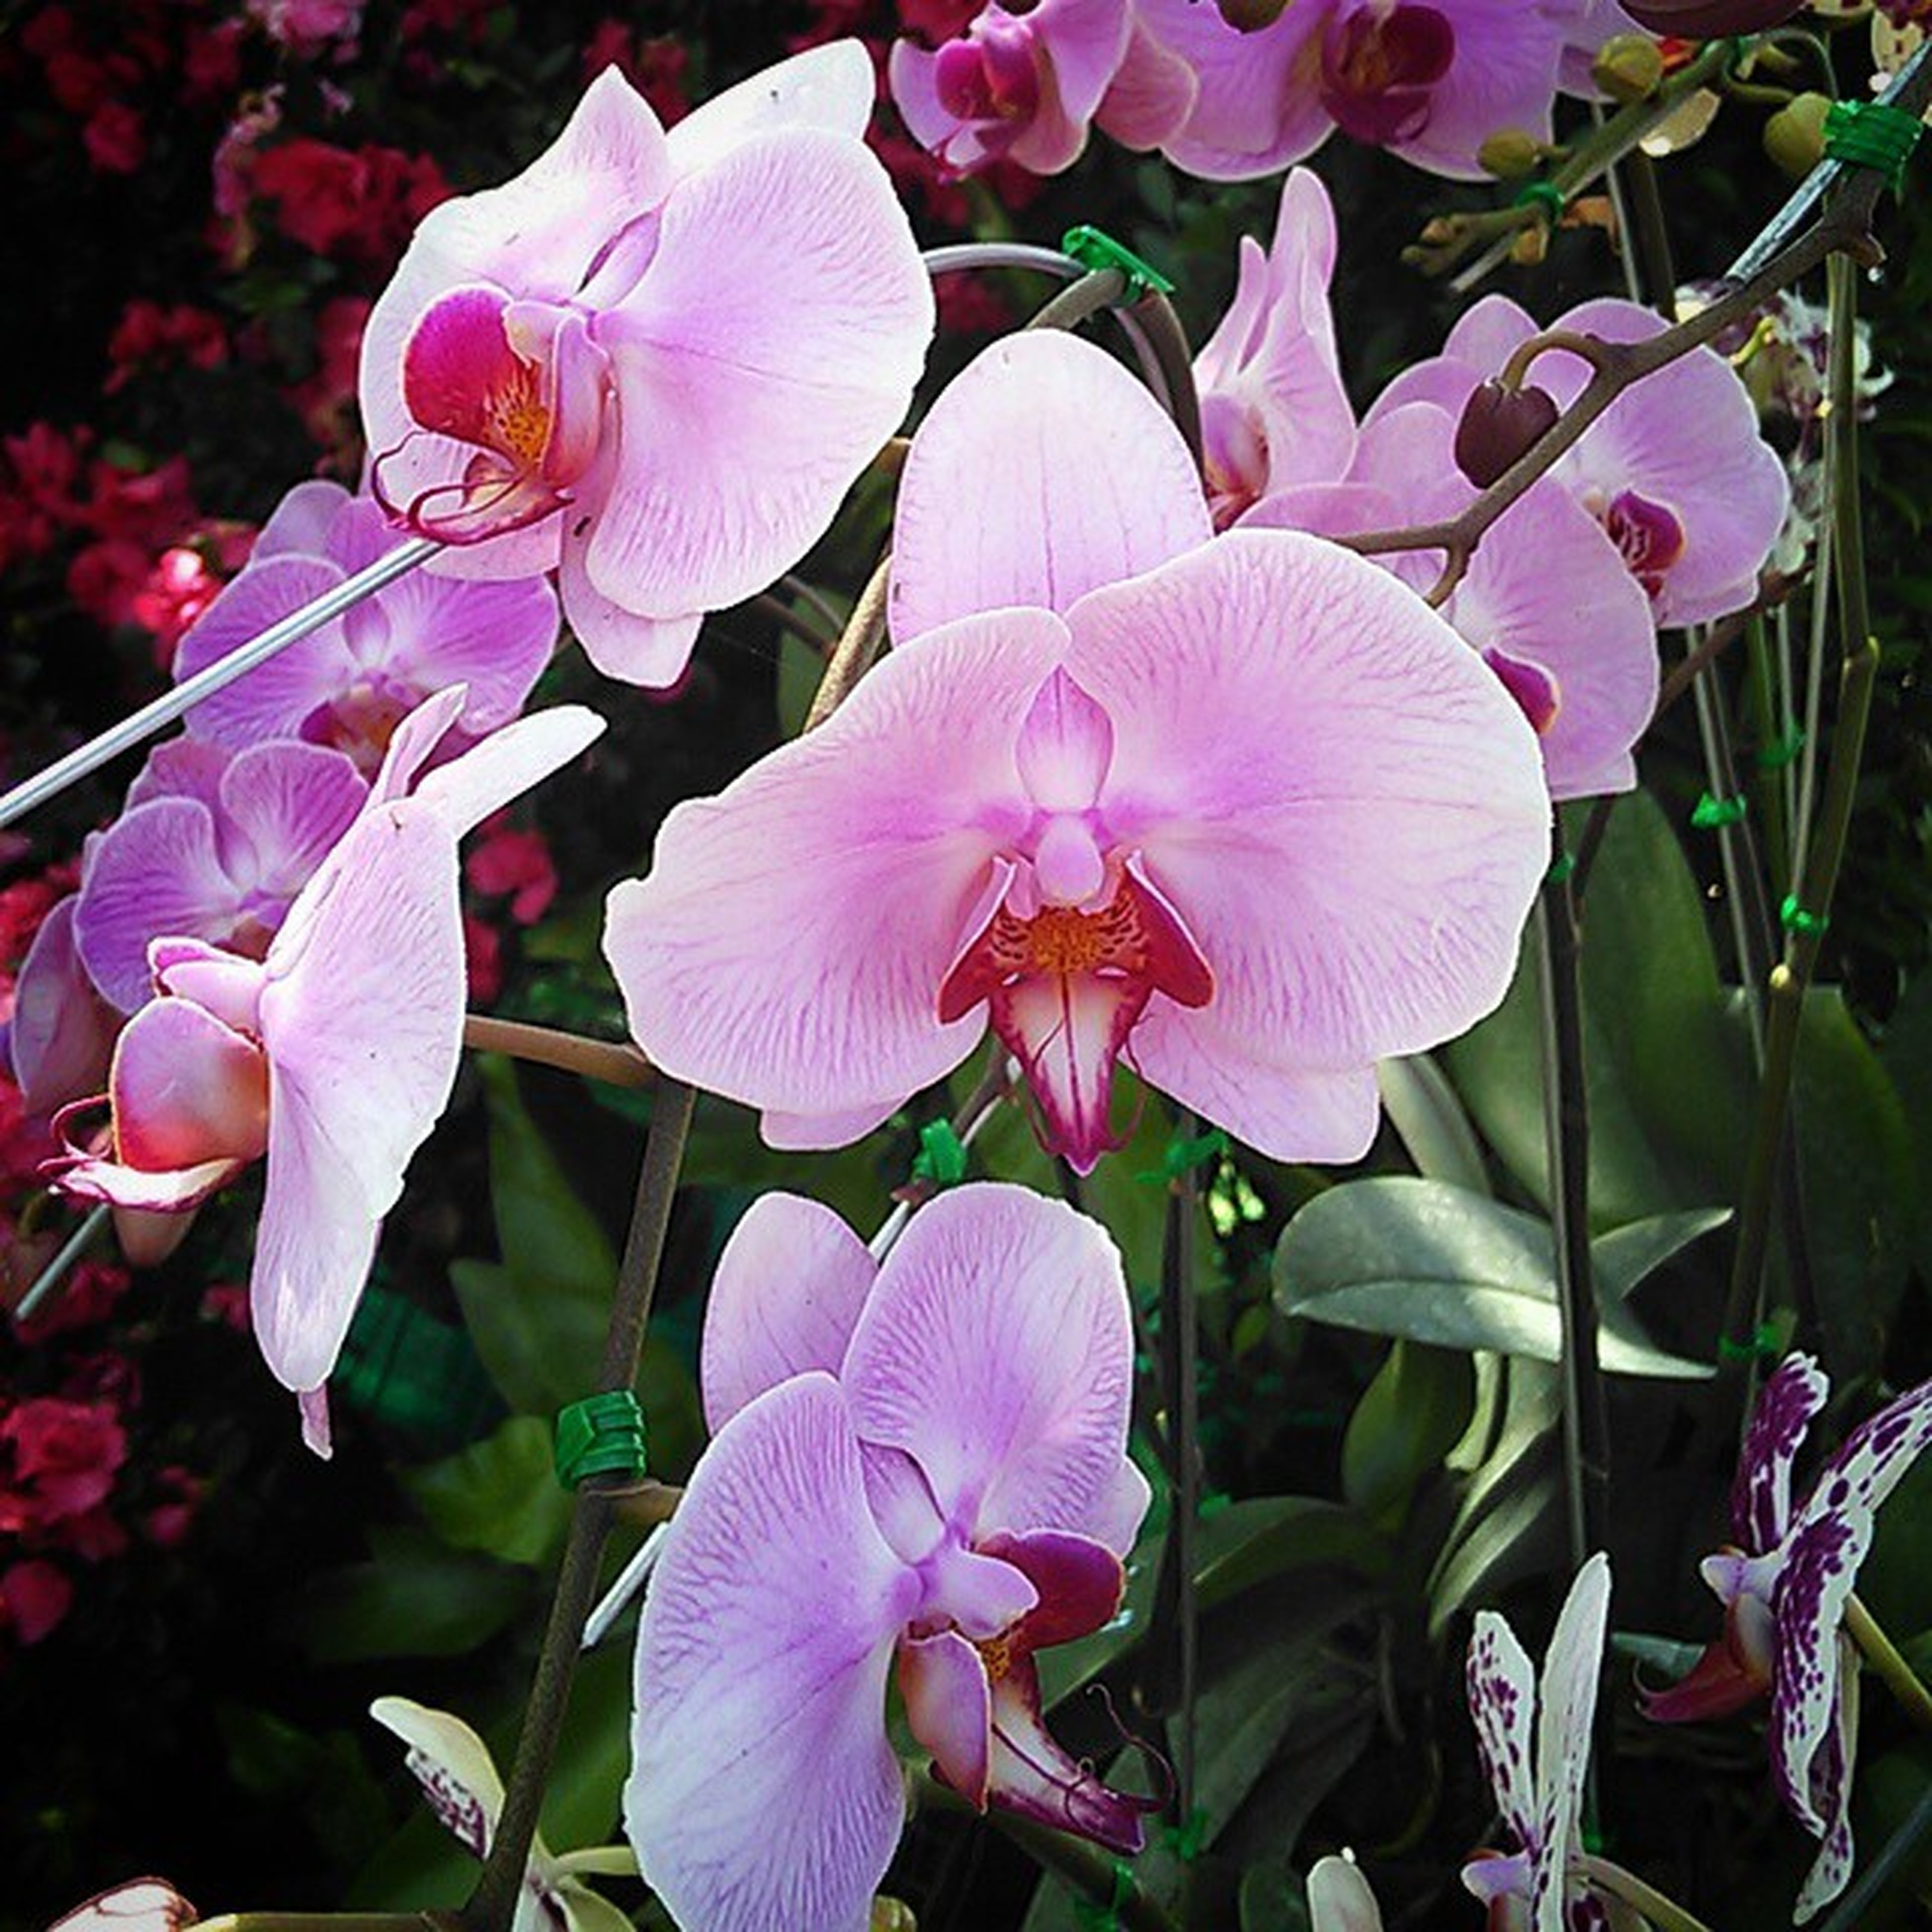 flower, petal, freshness, fragility, flower head, growth, beauty in nature, blooming, nature, pink color, close-up, plant, purple, orchid, in bloom, leaf, focus on foreground, stamen, park - man made space, blossom